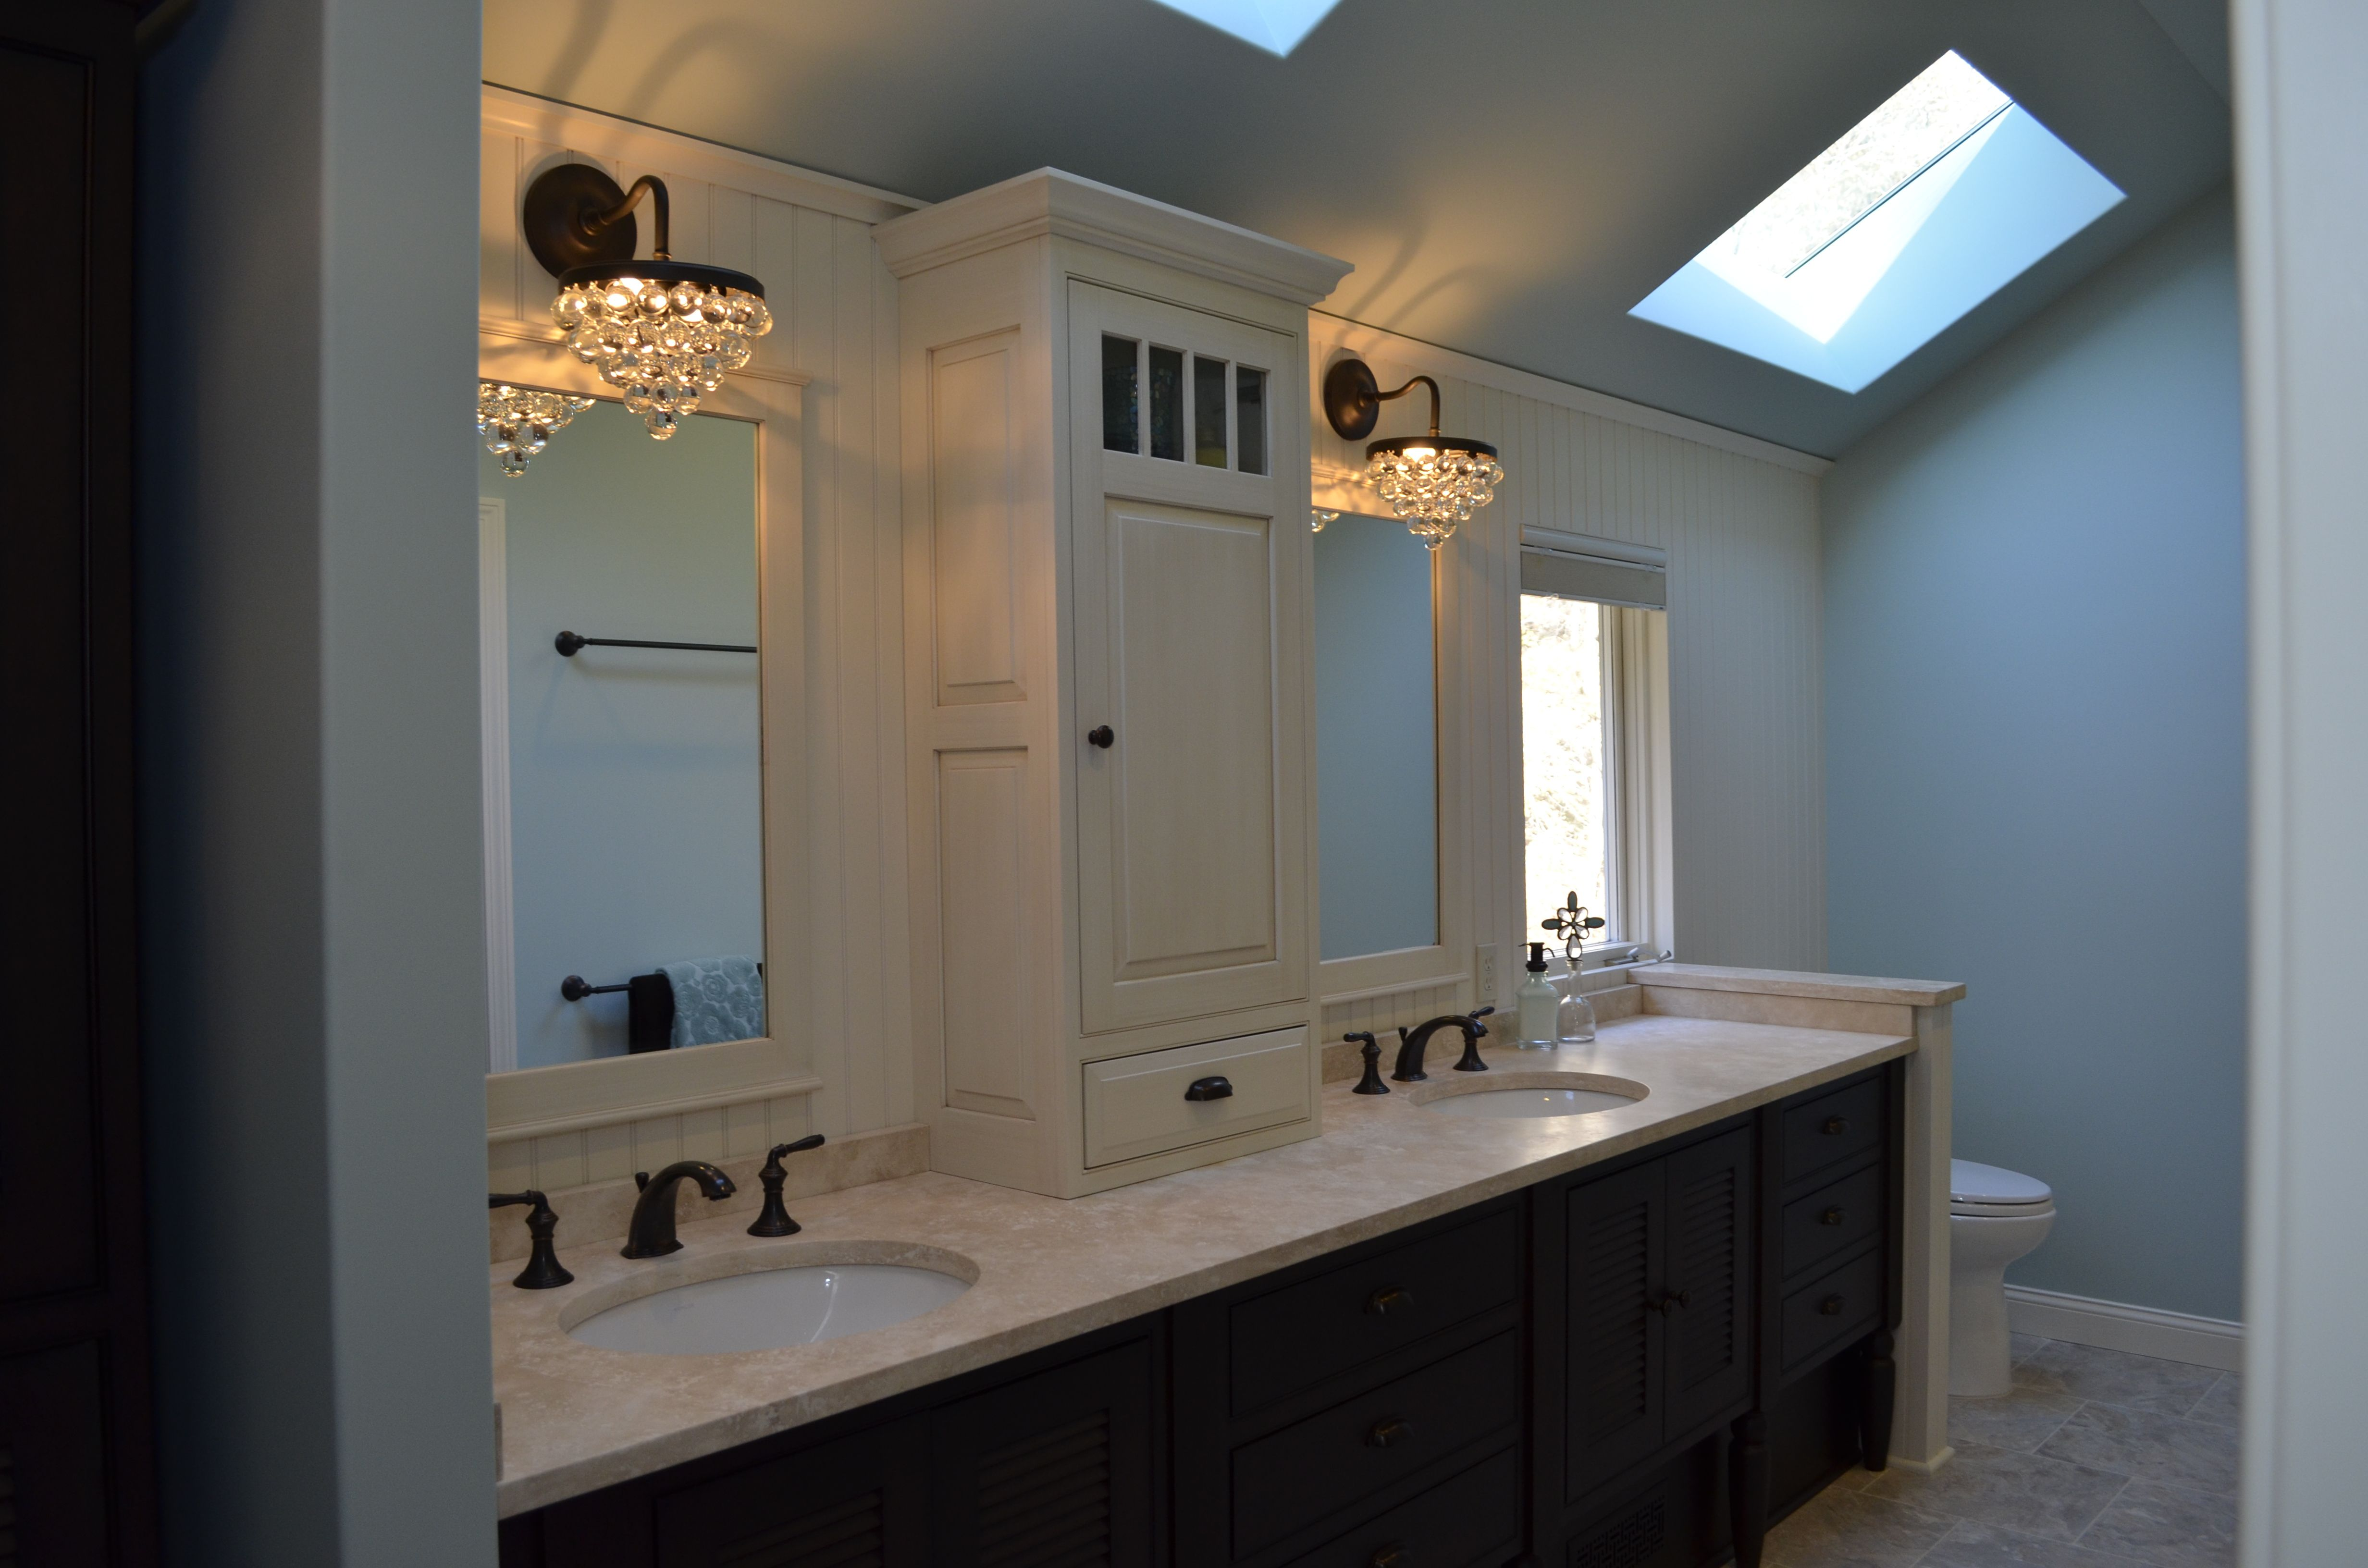 Crystal Cabinetry 2 Tone Bathroom Vanity With Center Tower